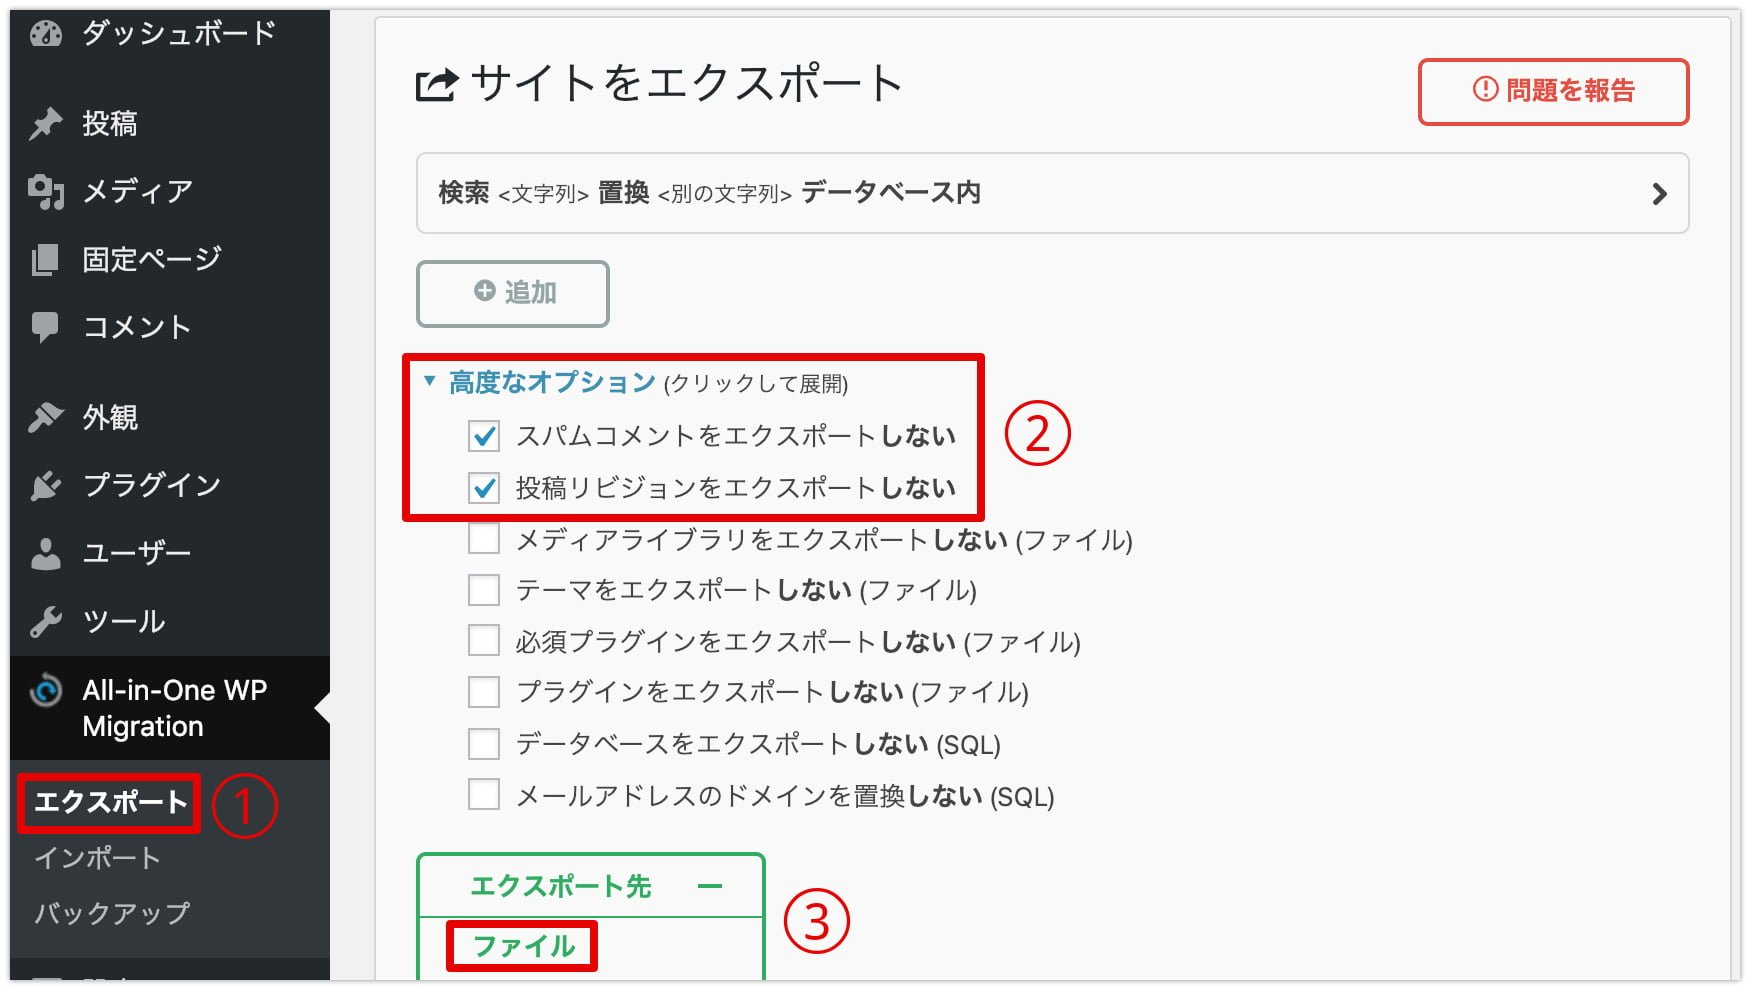 All-in-One WP Migrationエクスポート